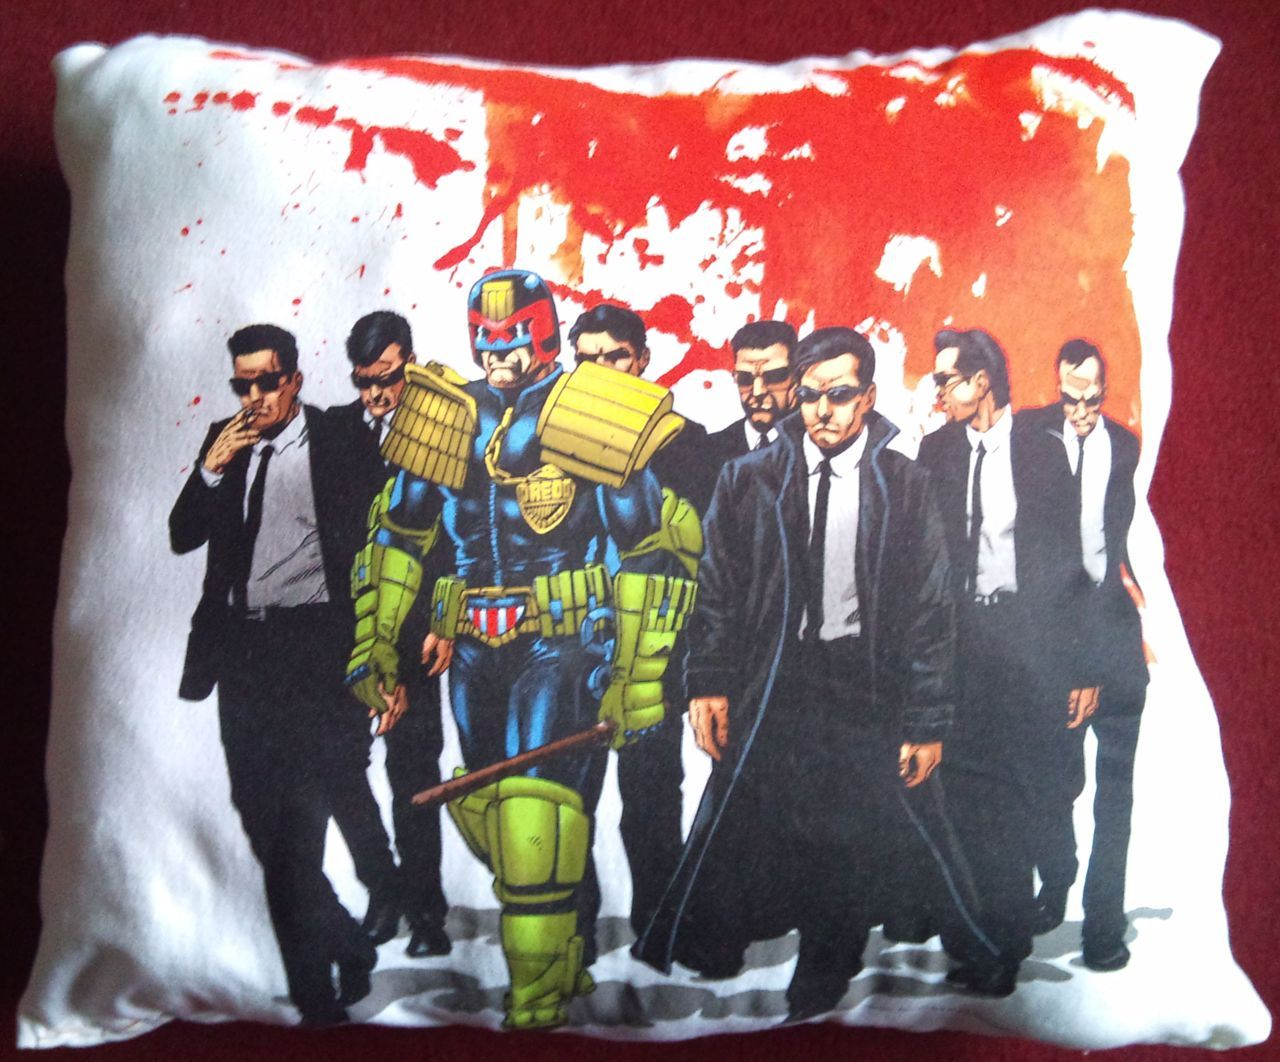 Just came home to discover Andrea has made this awesome cushion out of a 2000AD Judge Dredd T-shirt which was too big and therefore never worn. Outstanding recycling of a killer print, damn comfy too!!!